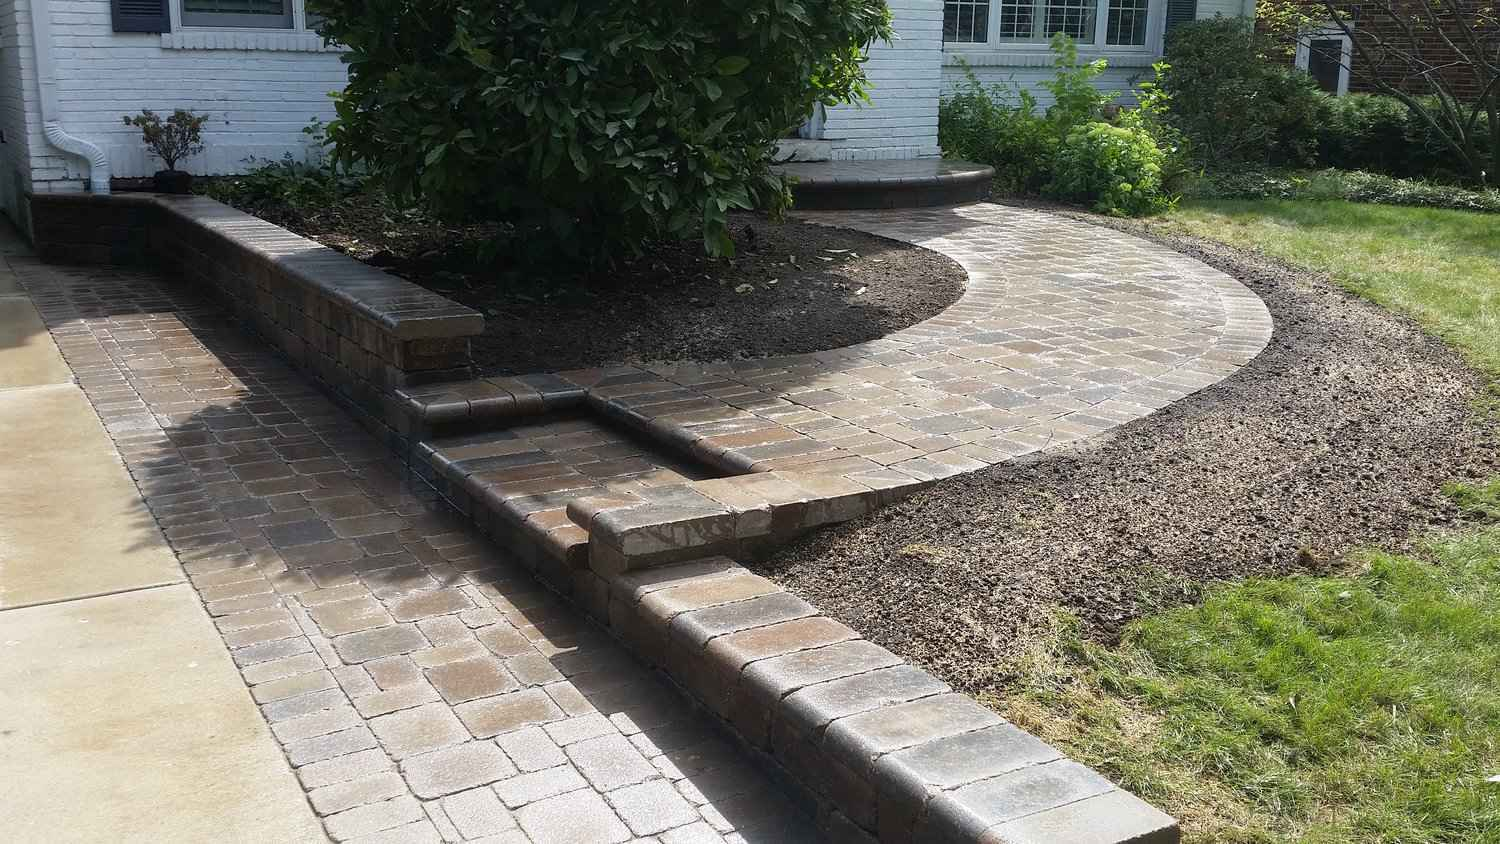 Oak Cliff-Grand Prairie TX Landscape Designs & Outdoor Living Areas-We offer Landscape Design, Outdoor Patios & Pergolas, Outdoor Living Spaces, Stonescapes, Residential & Commercial Landscaping, Irrigation Installation & Repairs, Drainage Systems, Landscape Lighting, Outdoor Living Spaces, Tree Service, Lawn Service, and more.